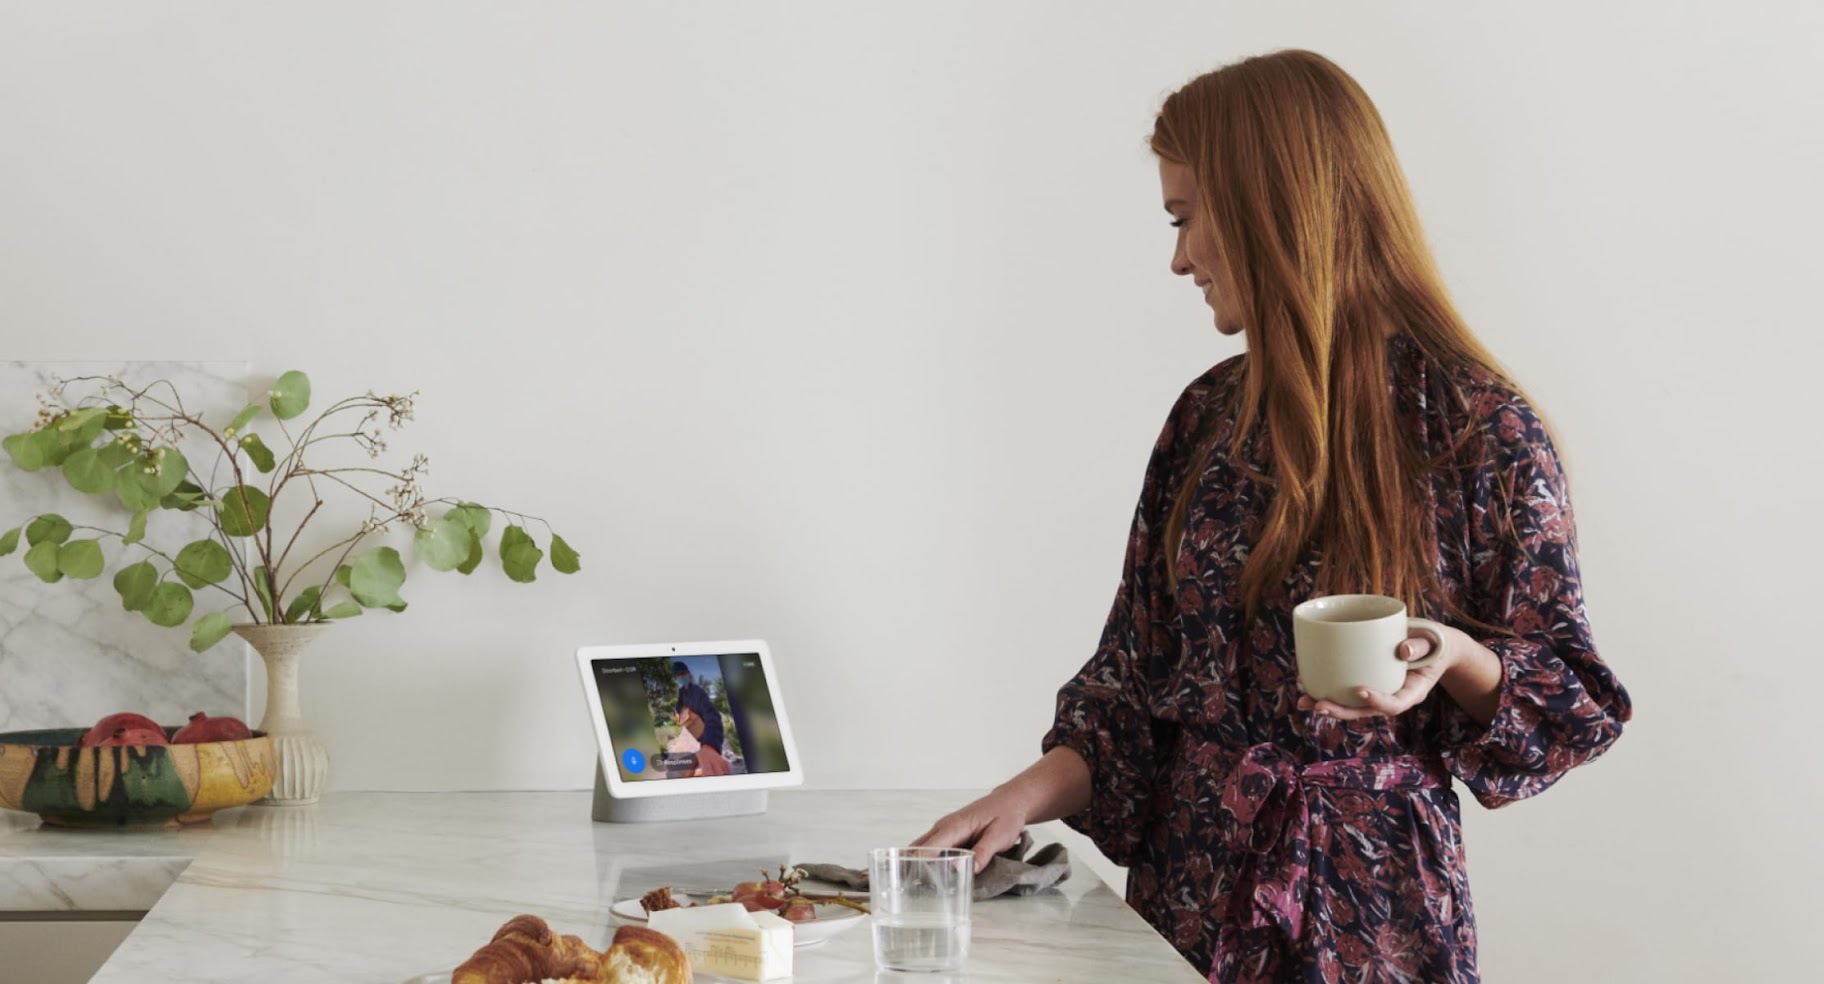 A woman drinking coffee looks at Nest Hub display on a table.